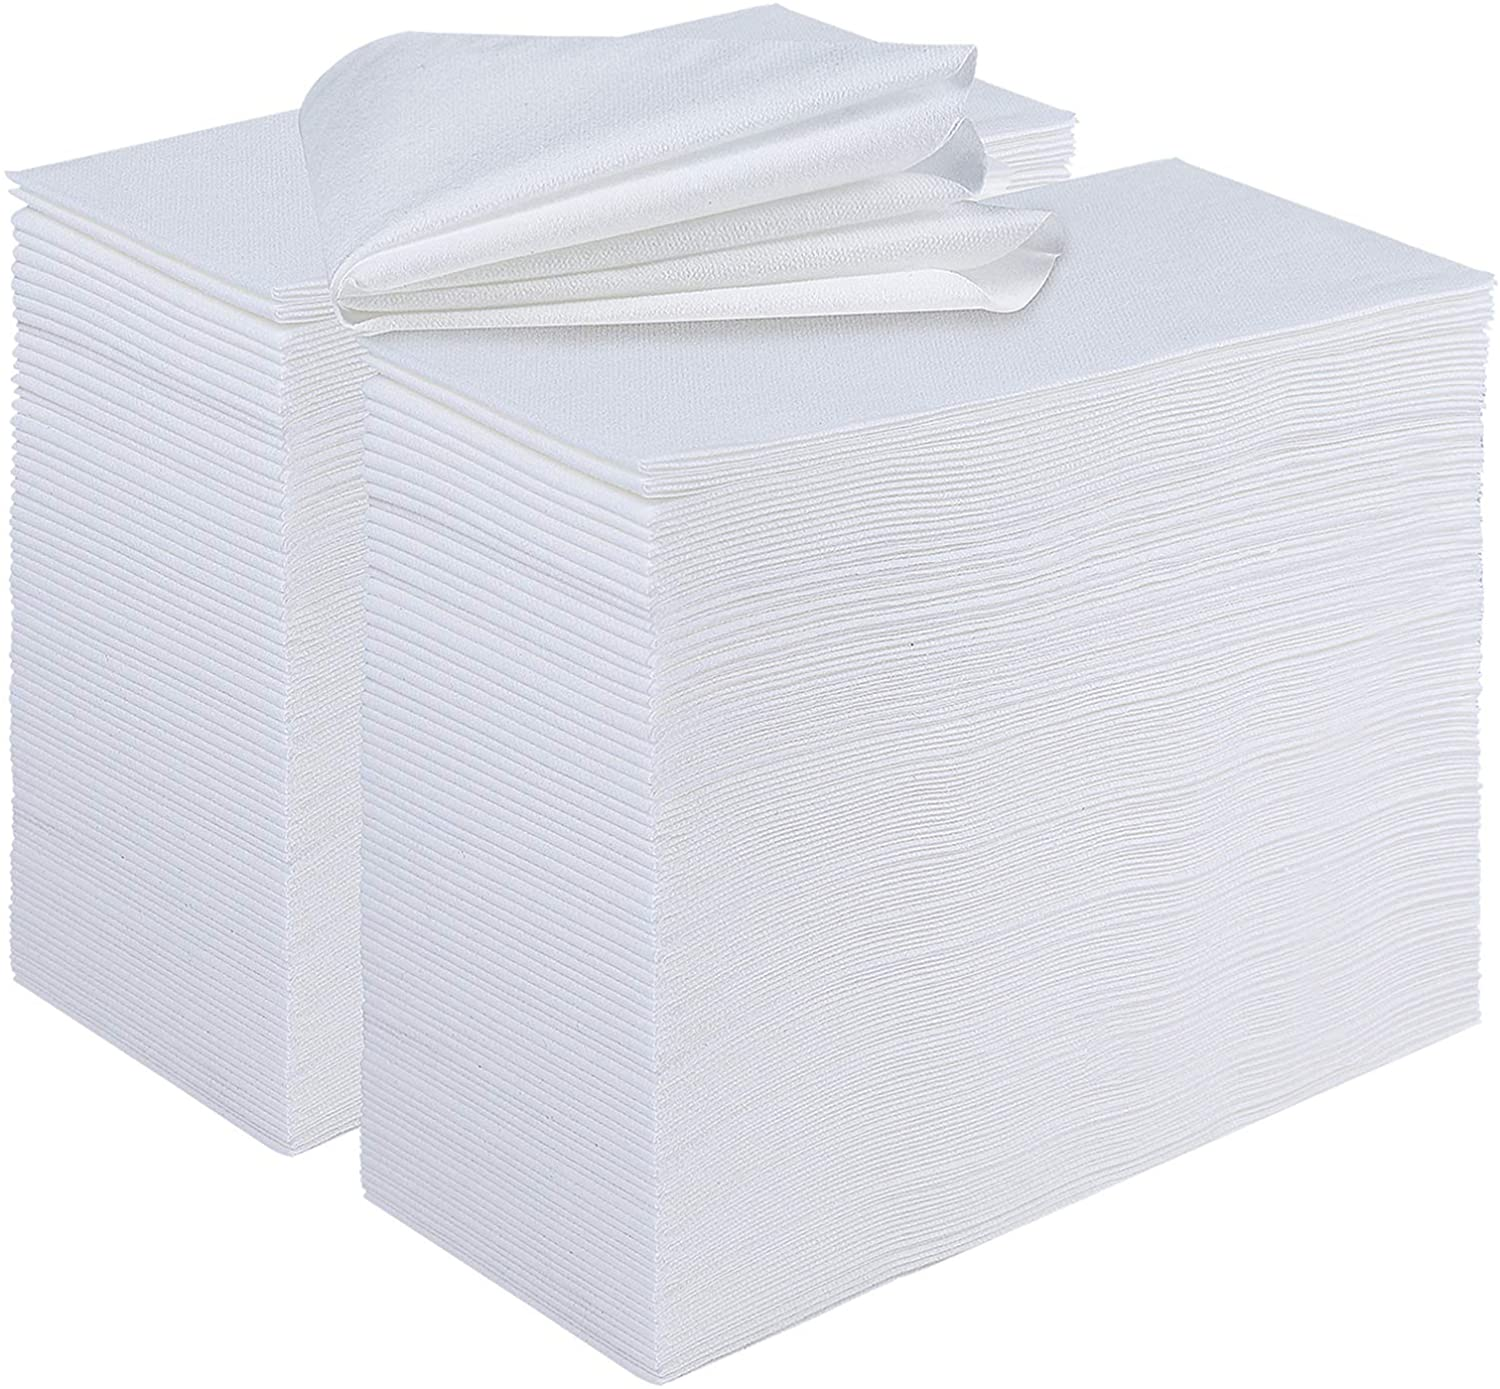 [480 Pack] Disposable Guest Towels Linen-Feel Paper Hand Towels, Soft and Absorbent Disposable Paper Napkins for Kitchen, Bathroom, Parties, Wedding, Event, White